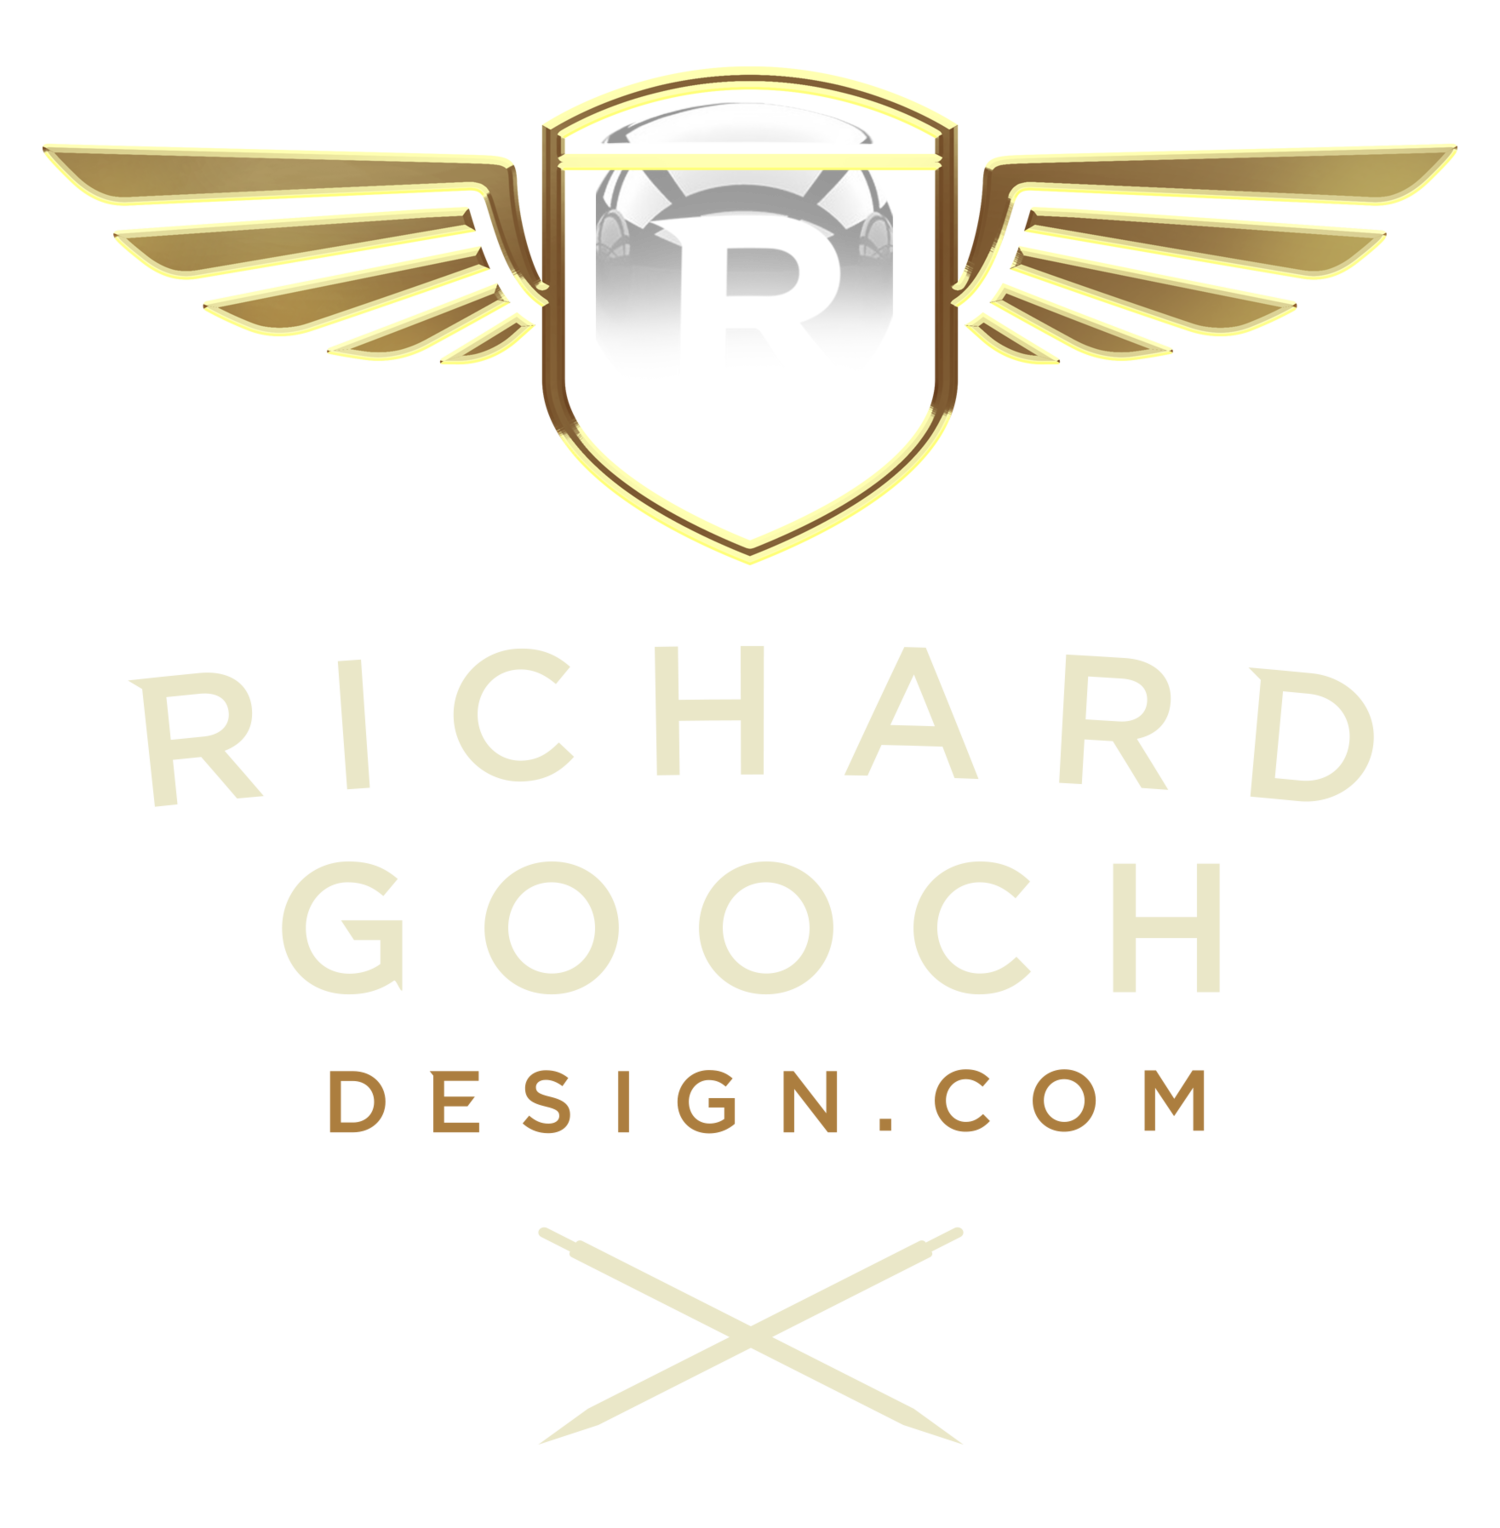 richardgoochdesign.com